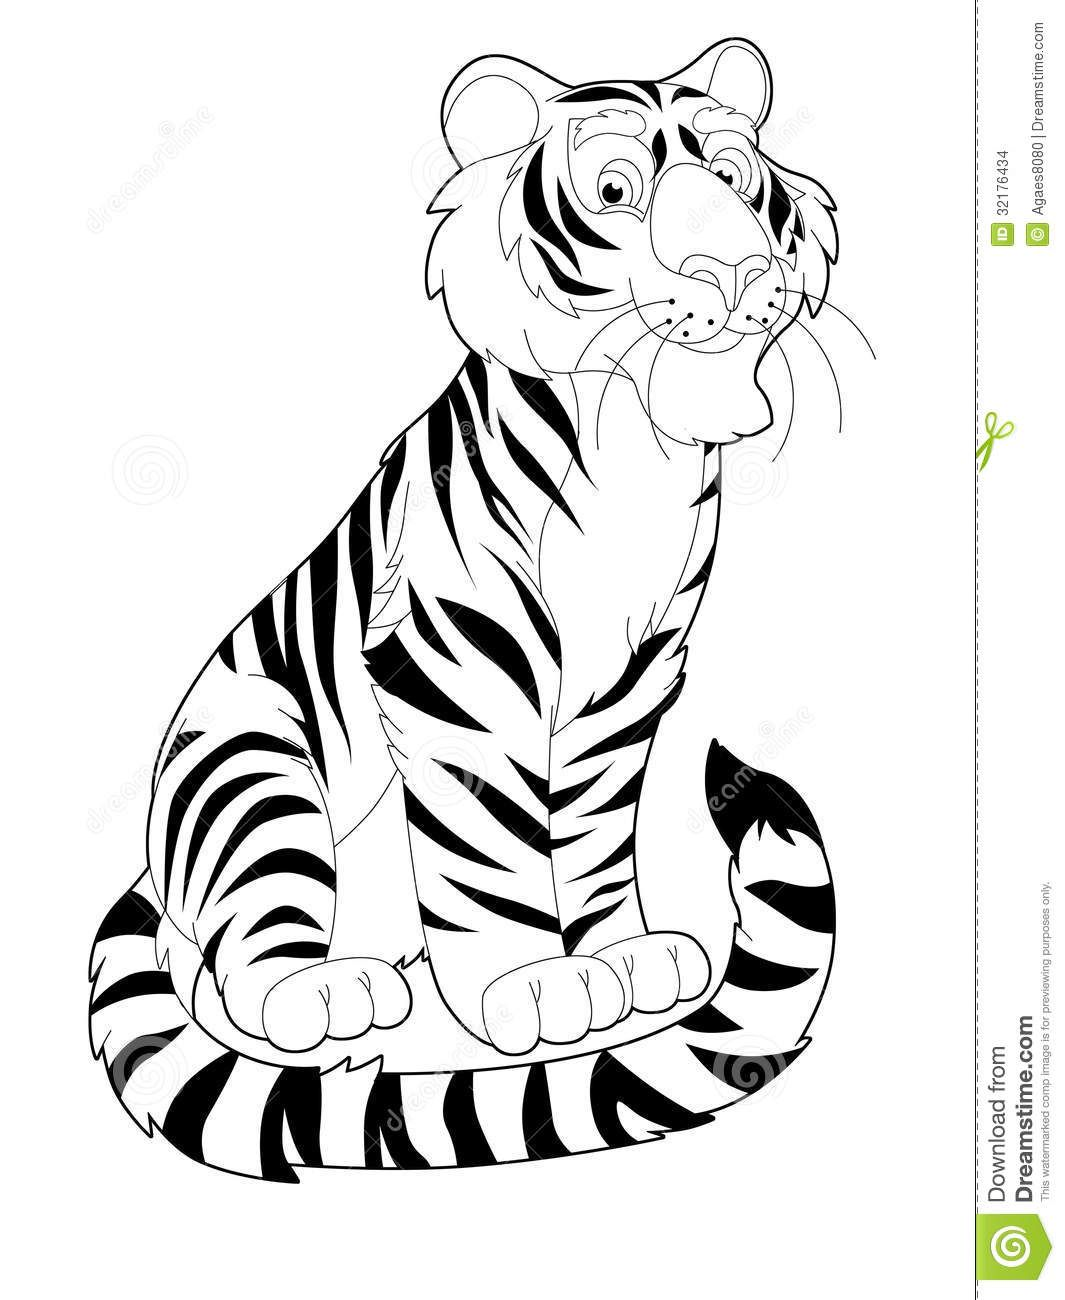 jungle safari coloring pages - Safari Animals Coloring Pages